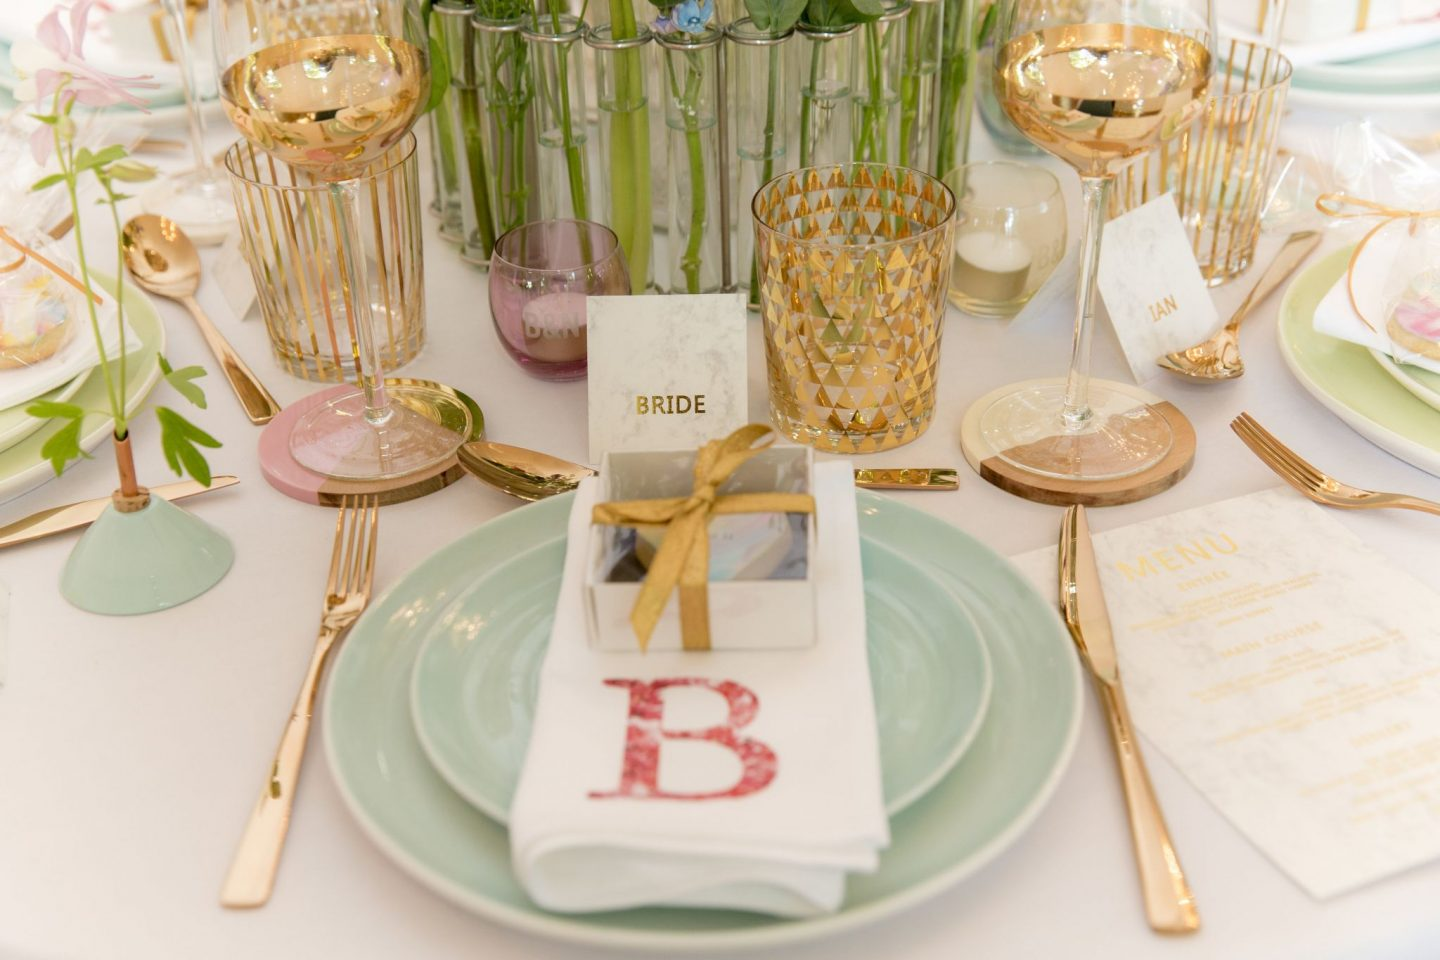 15-Laura-devine-bride-wedding-blogger-tasker-planner-not-on-the-high-street-press-day